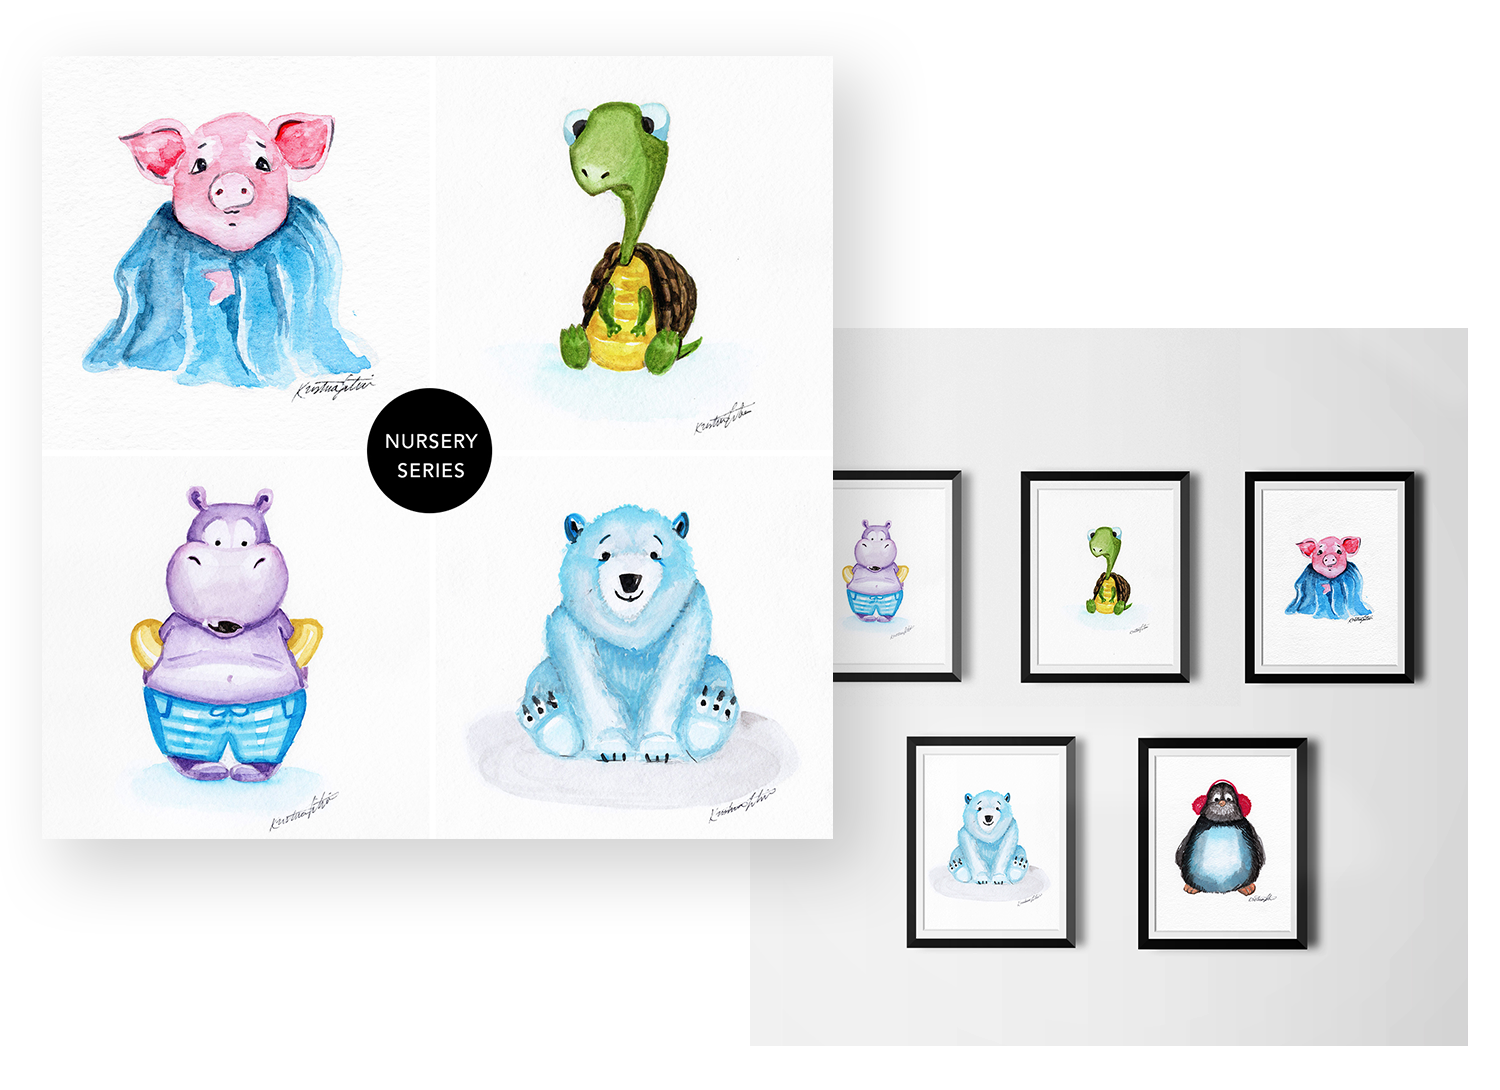 Animals - Whimsical characters each full of their own personality come to life in these one of a kind illustrations.